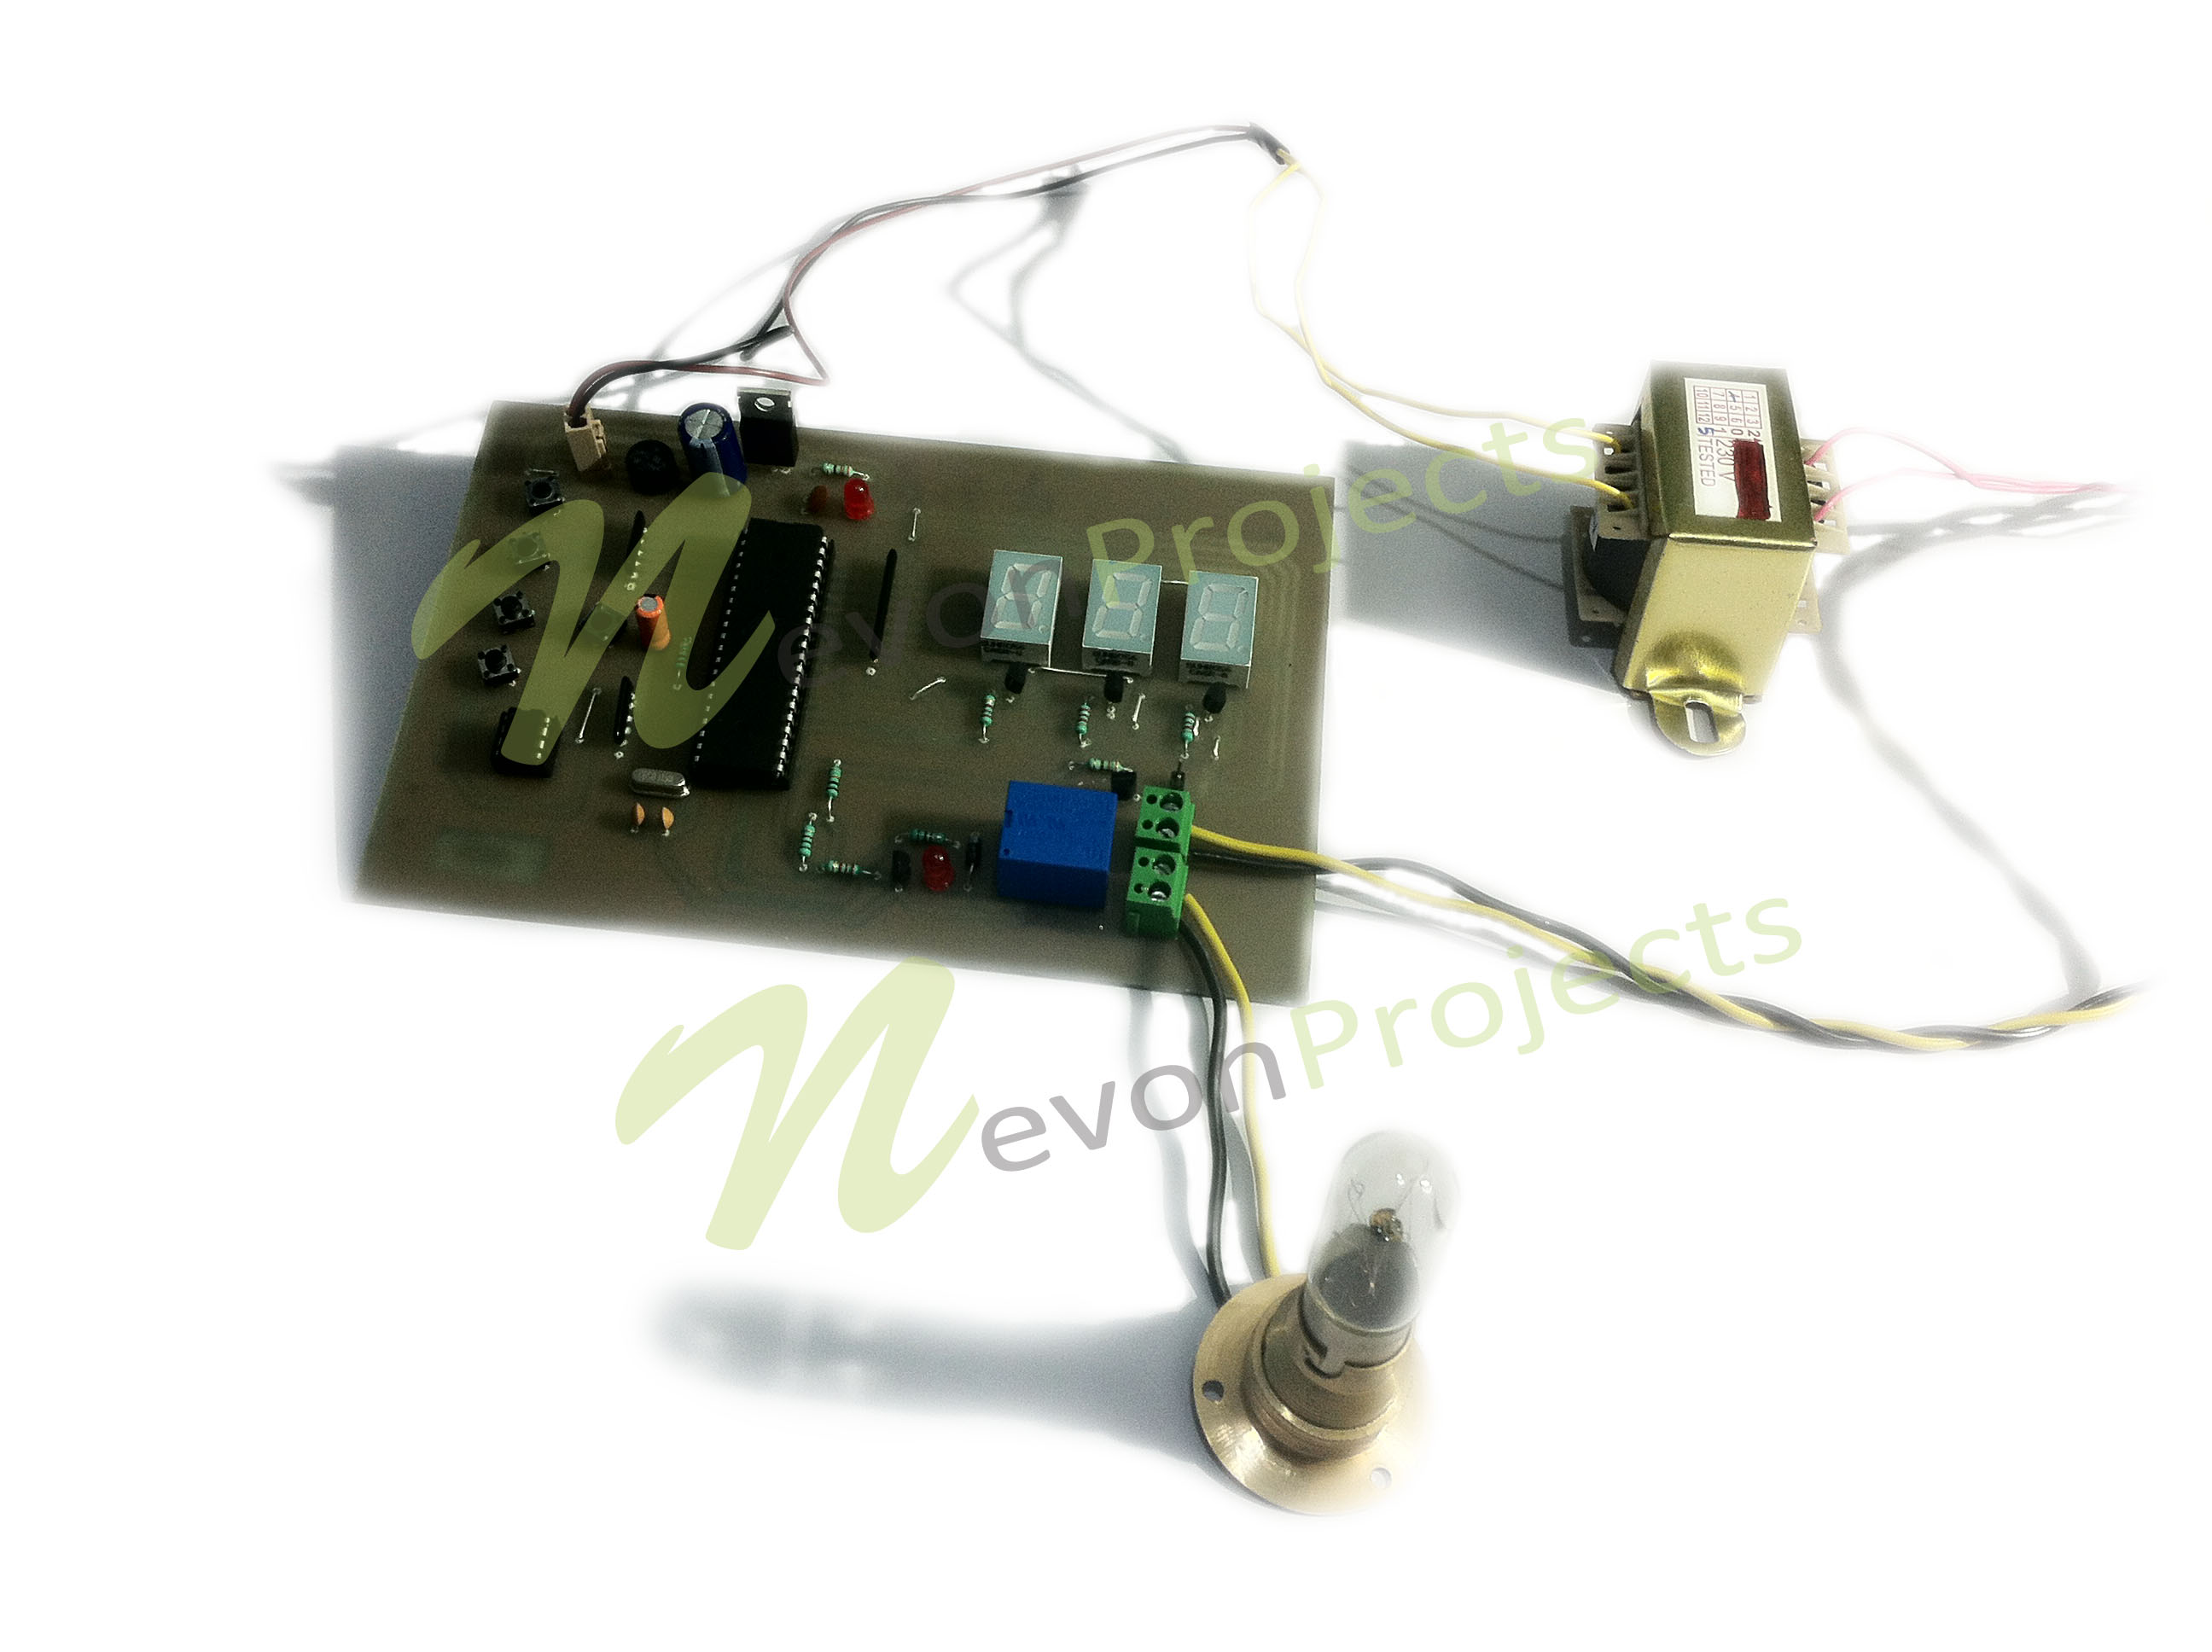 Precise Digital Temperature Controller Project Sensor Circuit Our Proposed Consists Of Sensors For More Accurate Control In Various Industries System Overcomes The